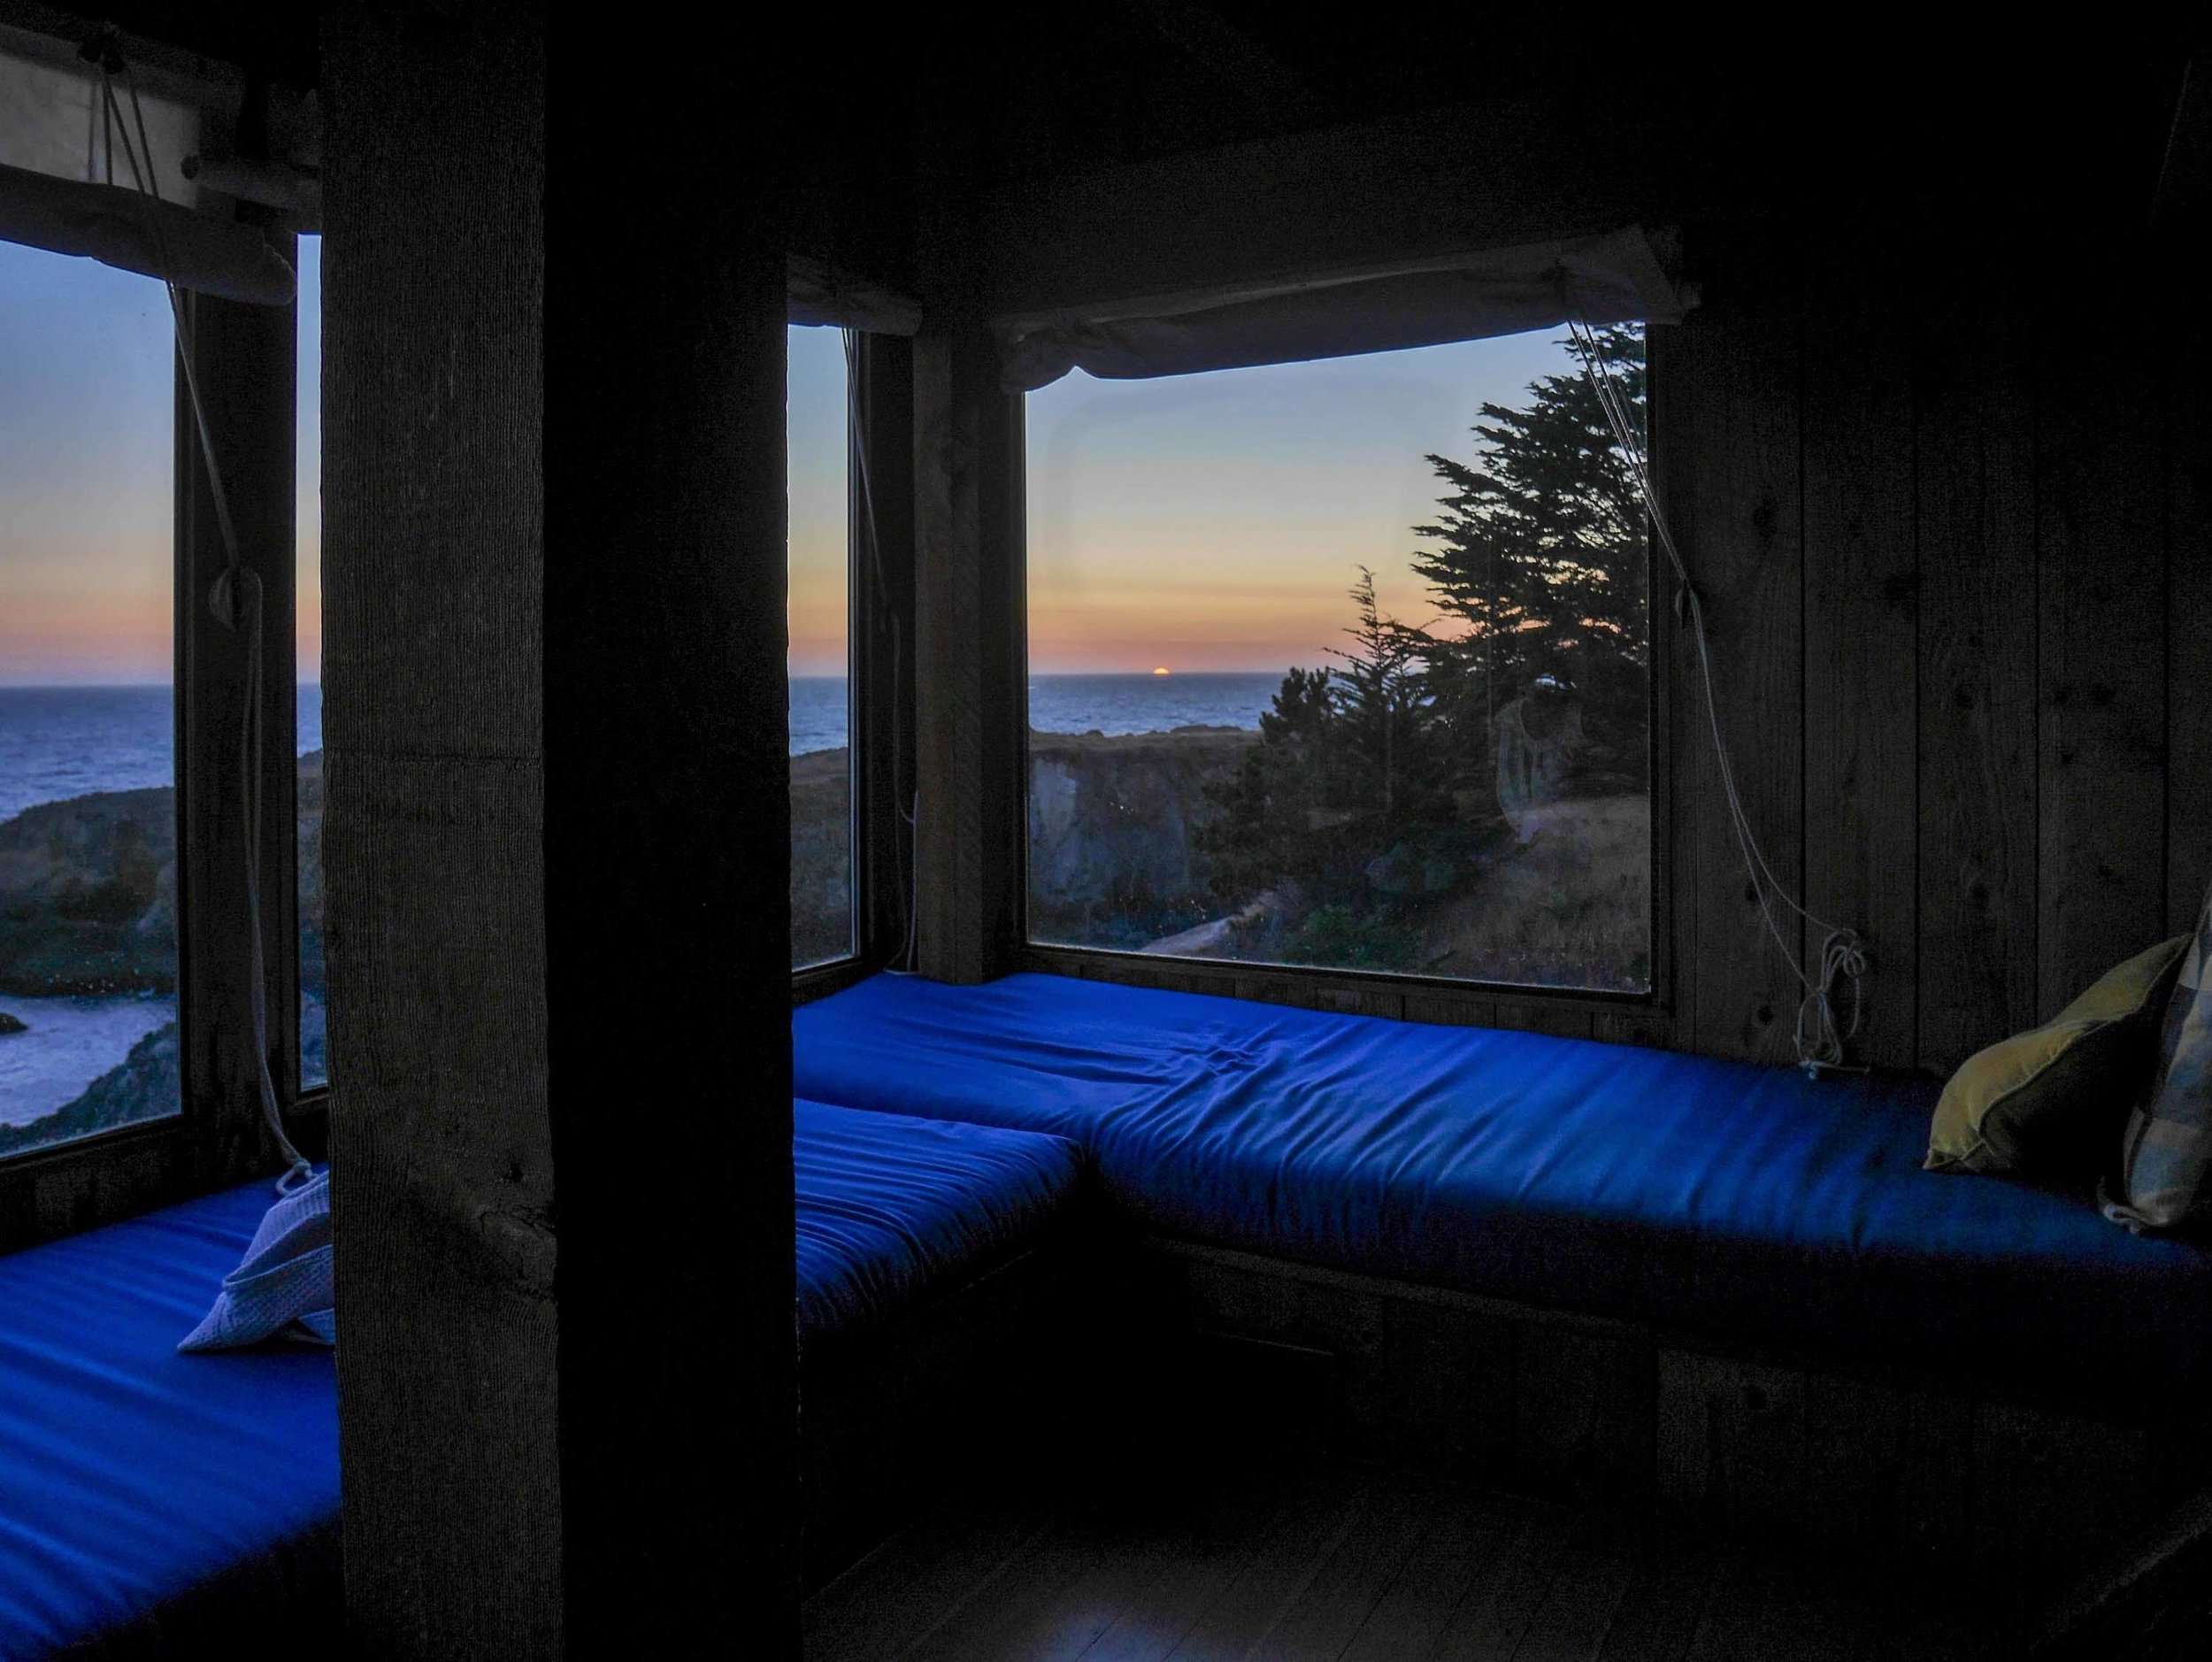 One of the most profound places I've ever lazed about: the window seat in Charles Moore's condominium at The Sea Ranch in Sonoma County, California.